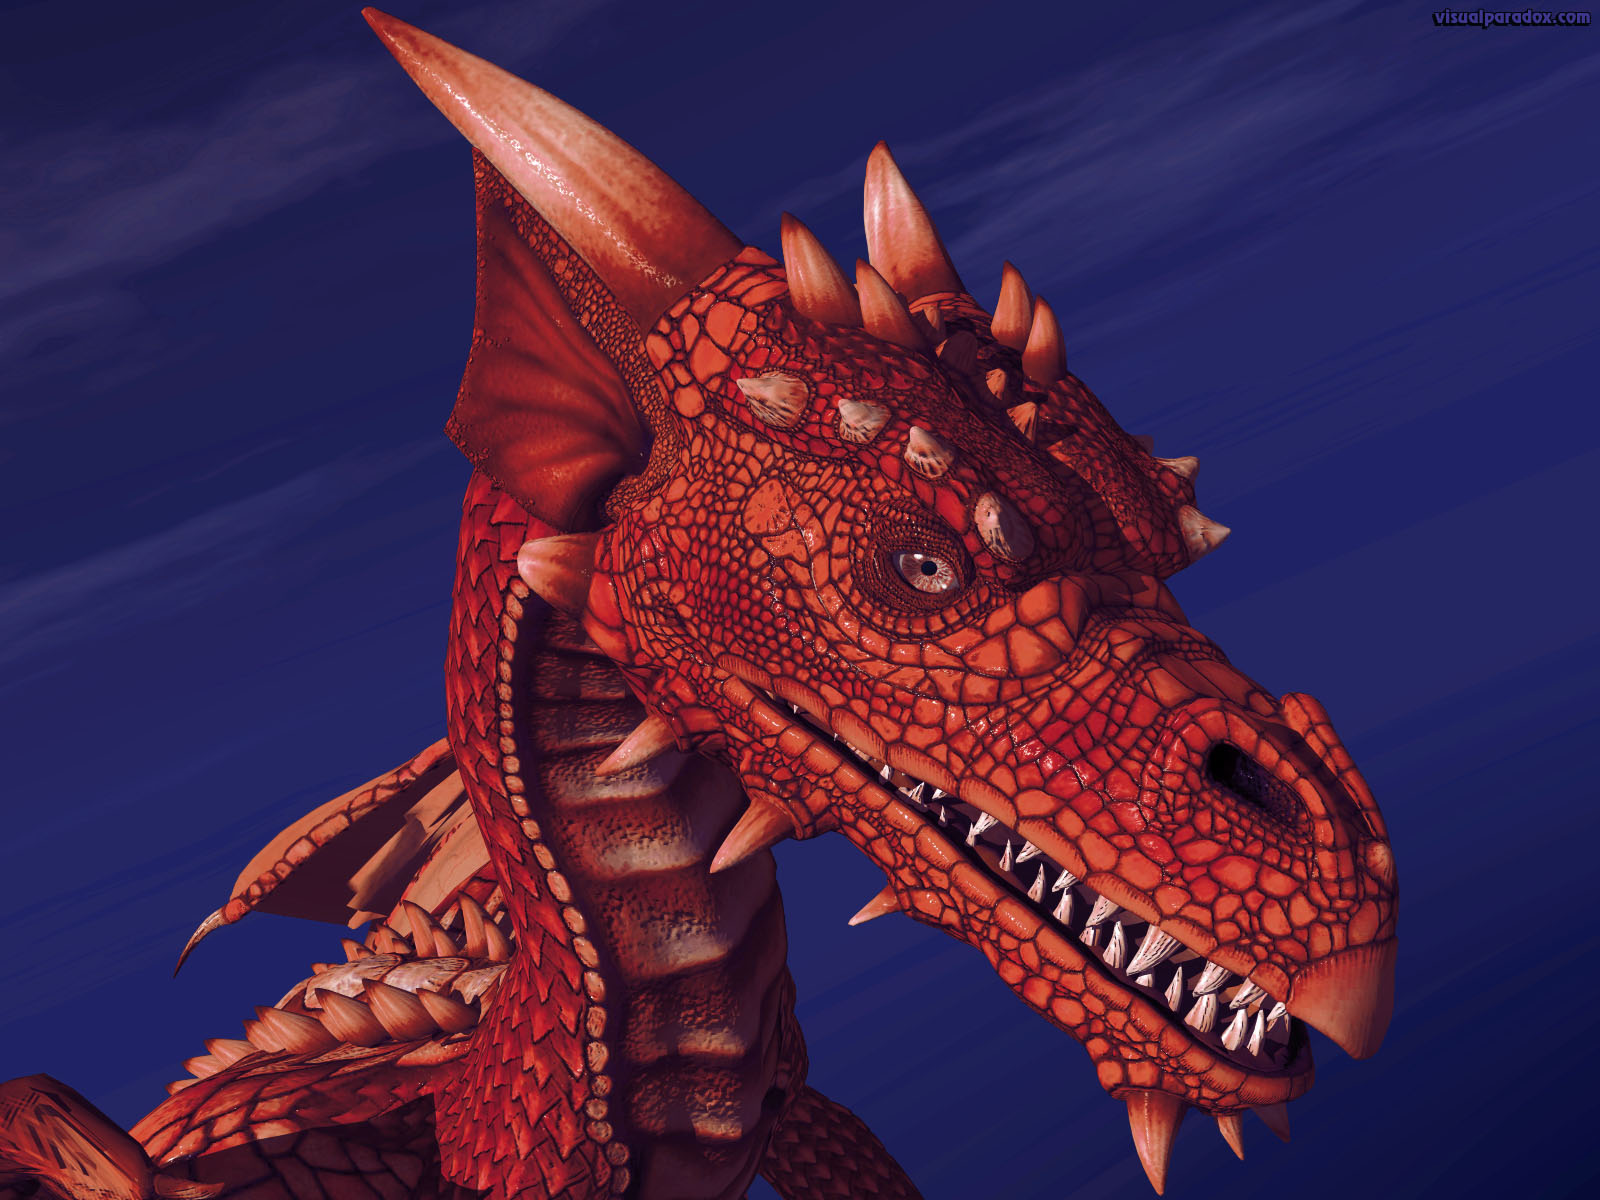 dragon, wyrm, mythical, monster, soar, closeup, detail, red, blood, crimson, dragons, 3d, wallpaper